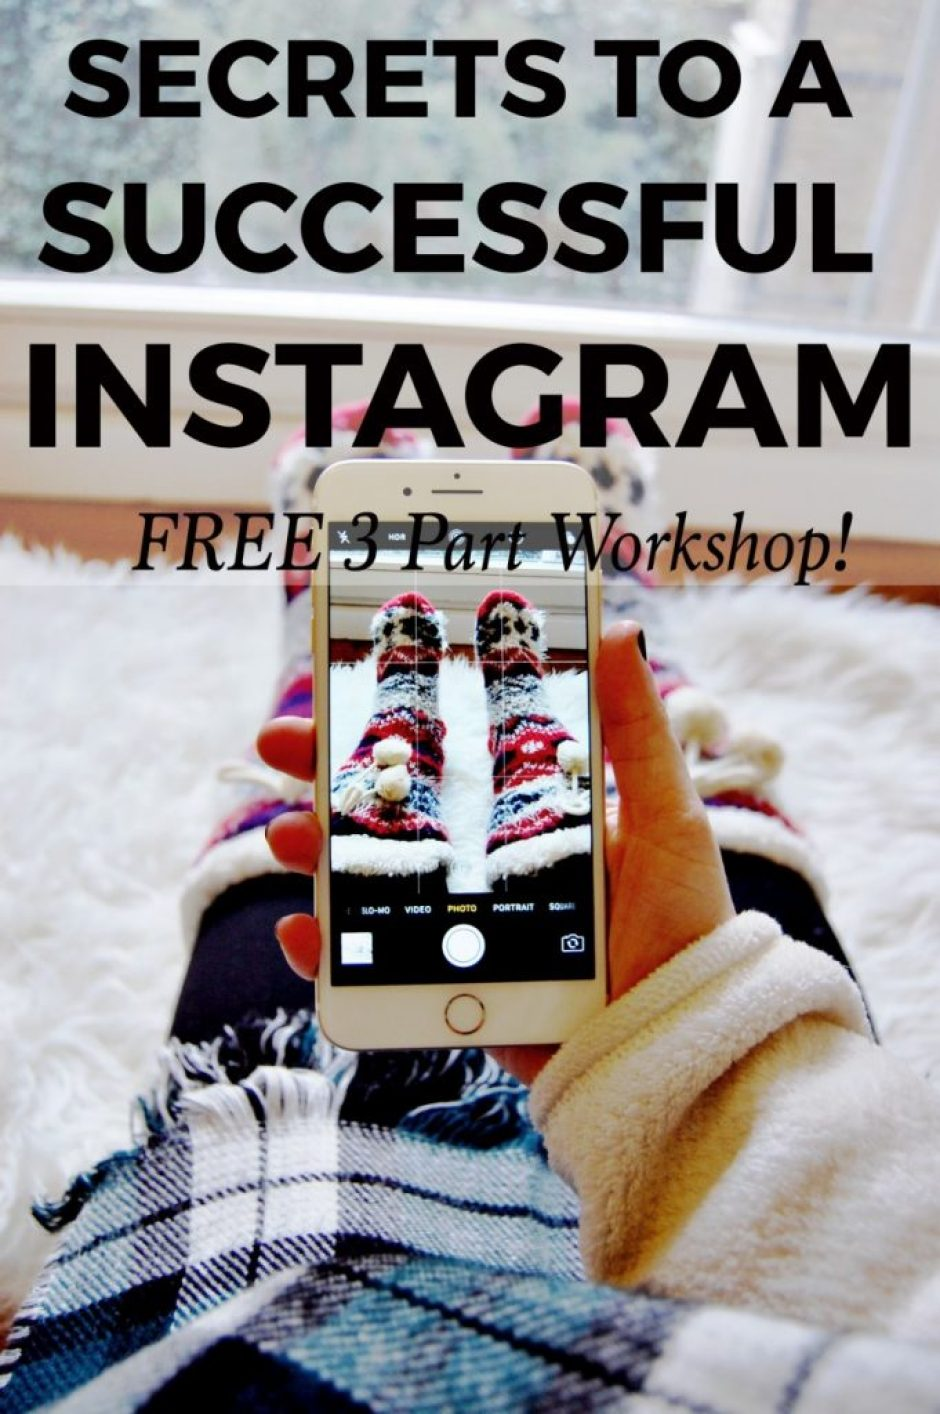 secrets_to_a_successful_instagram_free_3_part_workshop